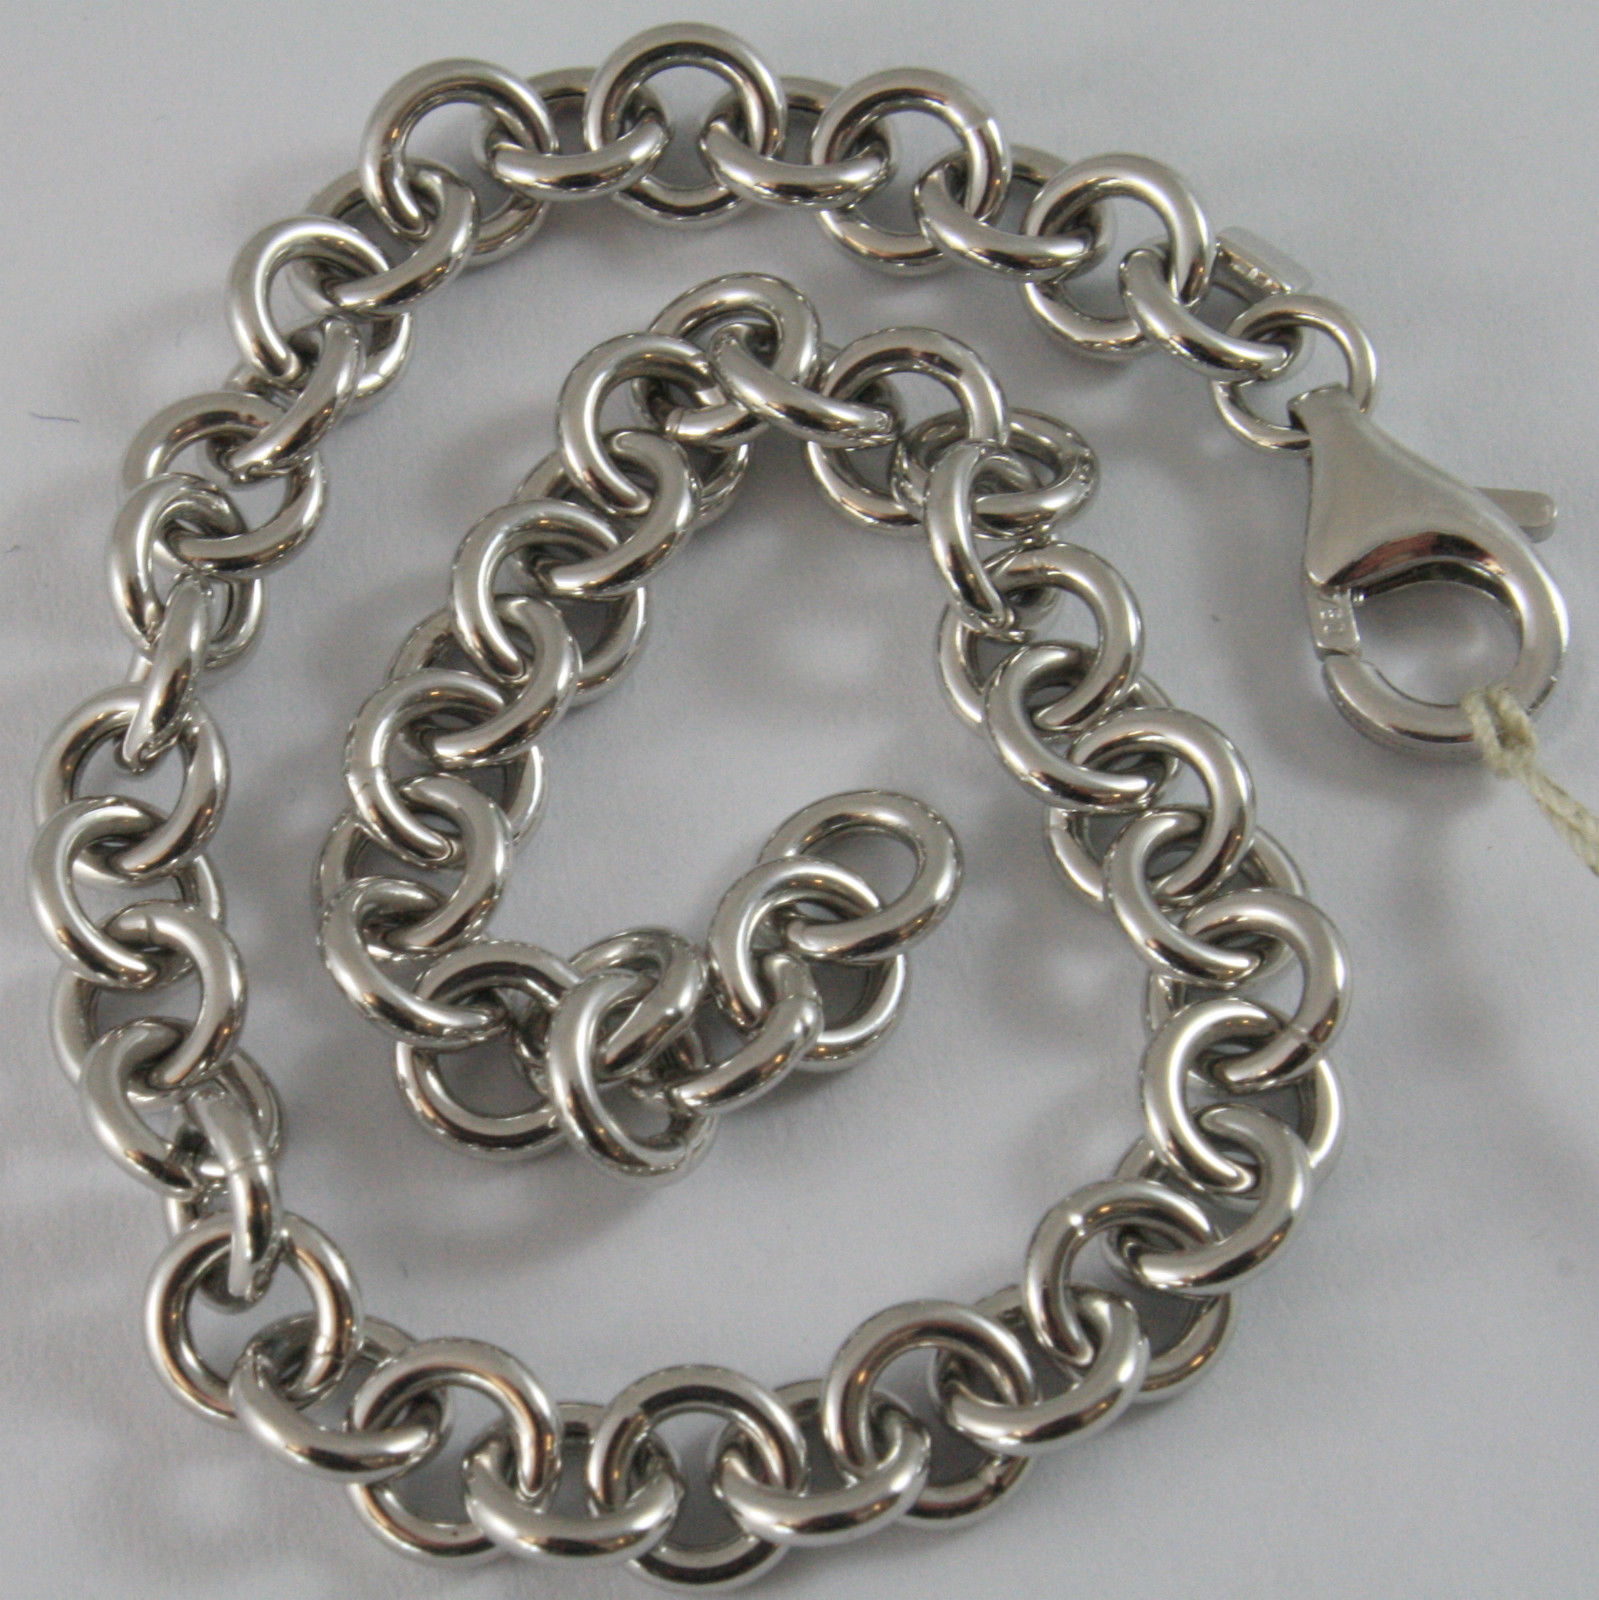 SOLID 18K WHITE GOLD BRACELET WITH ROLO ROUND LINK, MADE IN ITALY